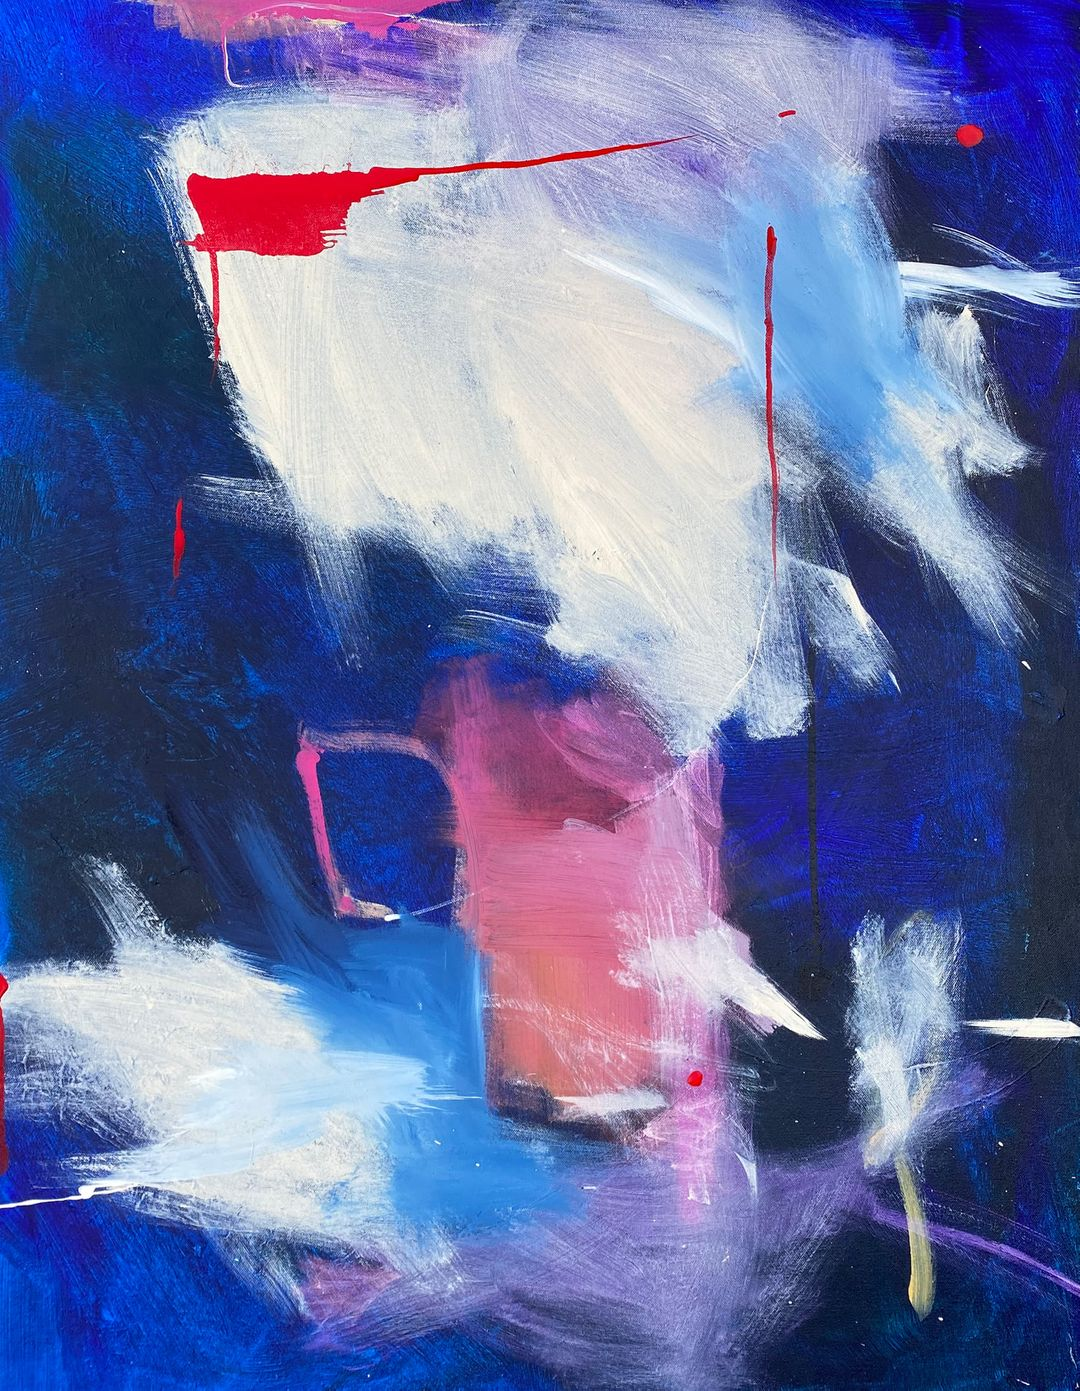 Contemporary abstract expressionism, abstract figurative art with markmaking, mark making in abstract figurative painting, new york art gallery online